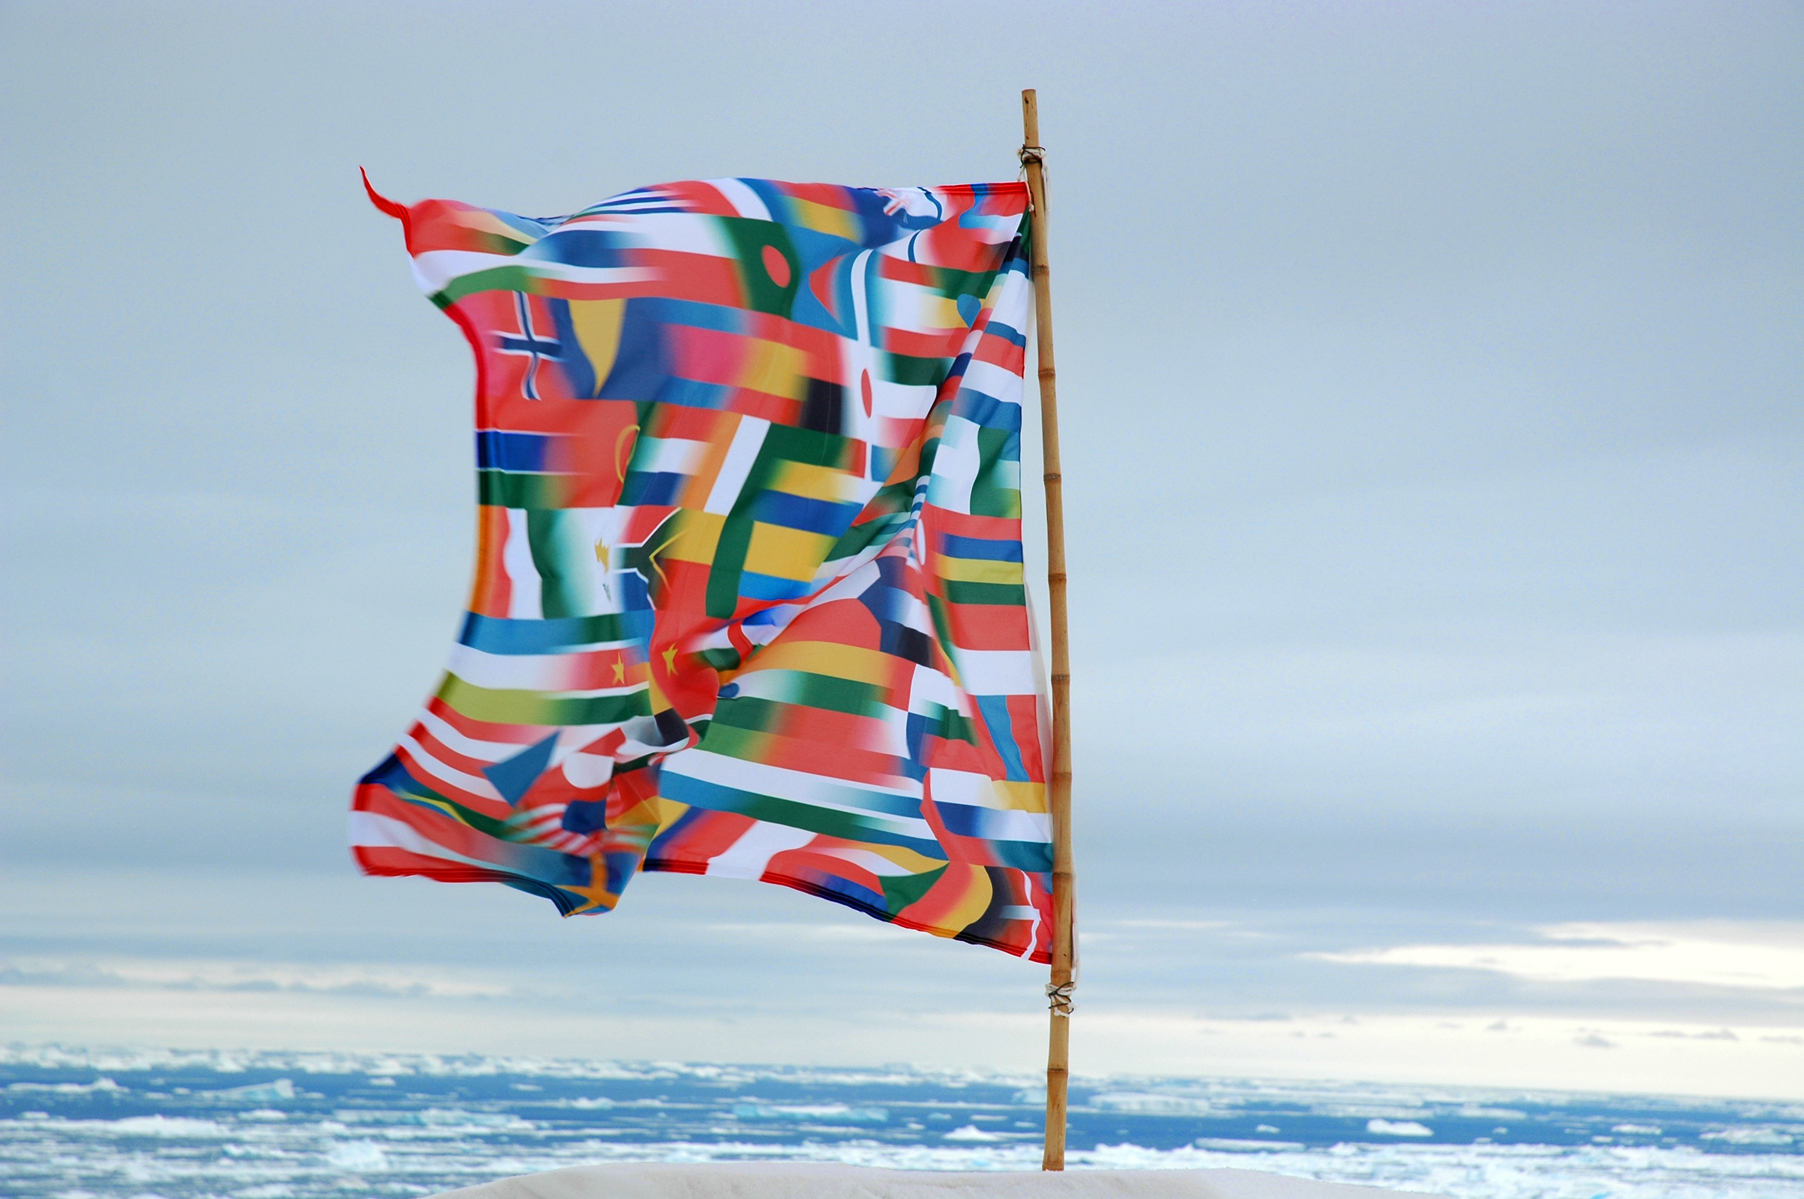 Antarctica Flag, (2007) by Lucy + Jorge Orta. All images courtesy of the artists